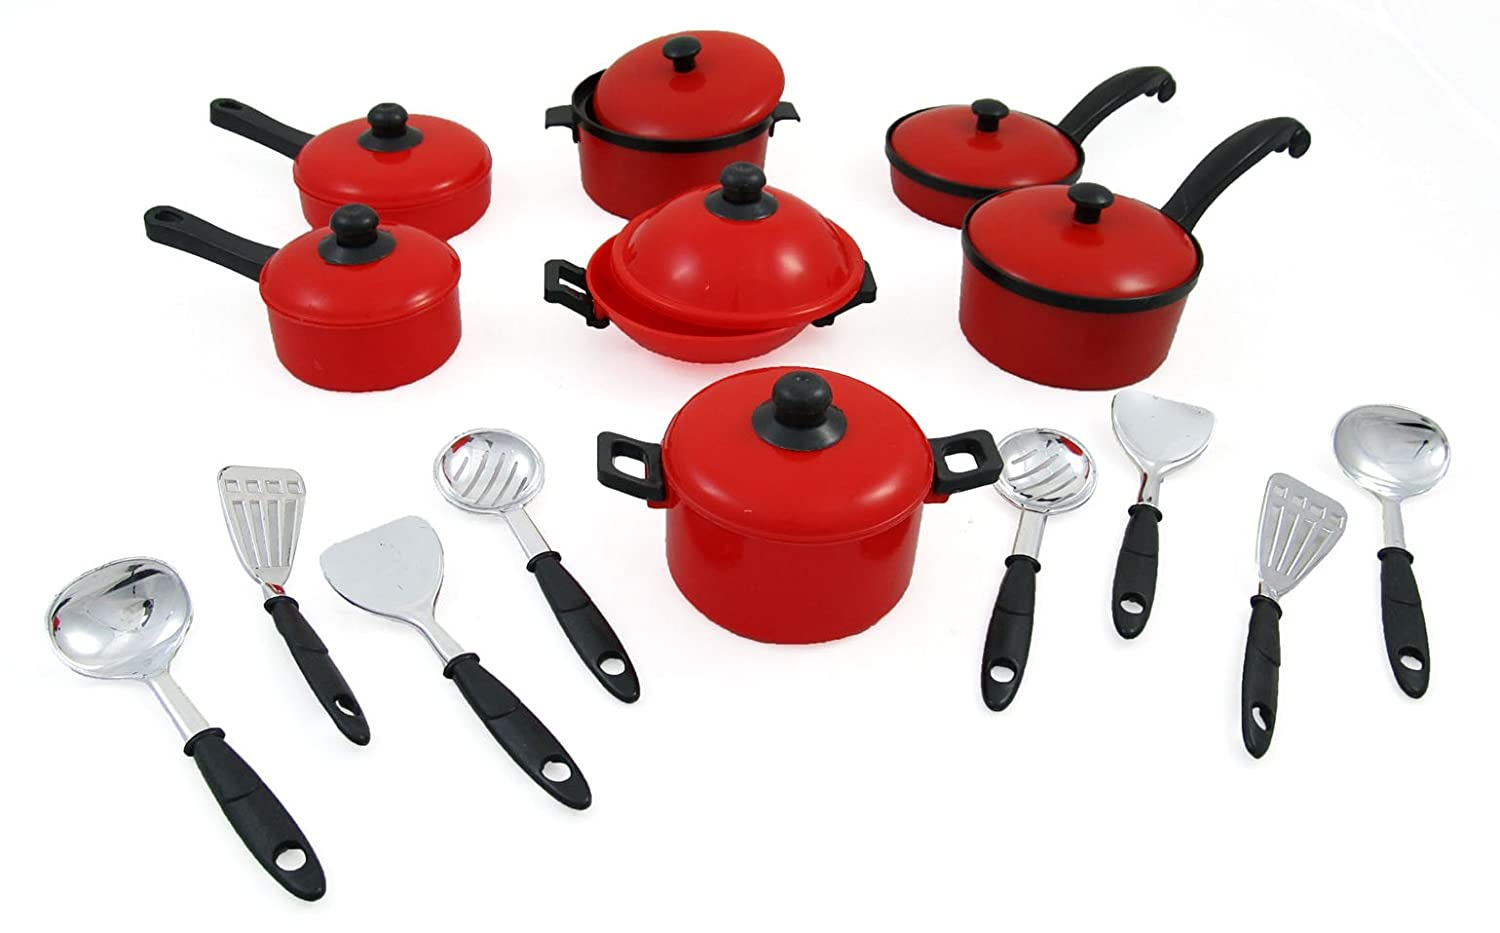 15 Piece Miniature Pots and Pans Kitchen Cookware Playset for Kids with Cooking Utensils Set by Liberty Imports